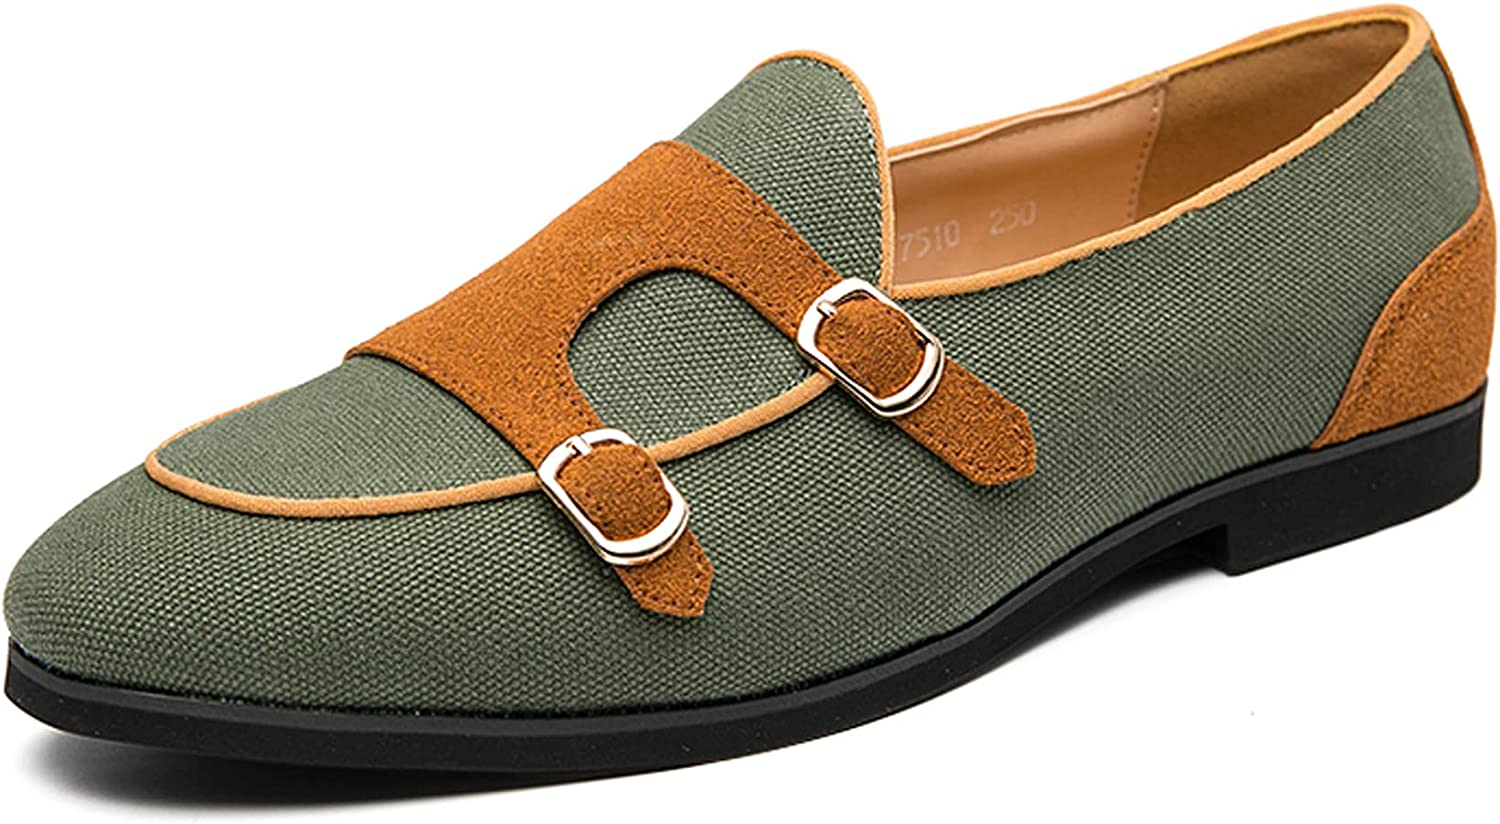 Joygown Men's Easy-to-use Driving Slip-on Loafers Casual Our shop most popular Size Shoes Plus